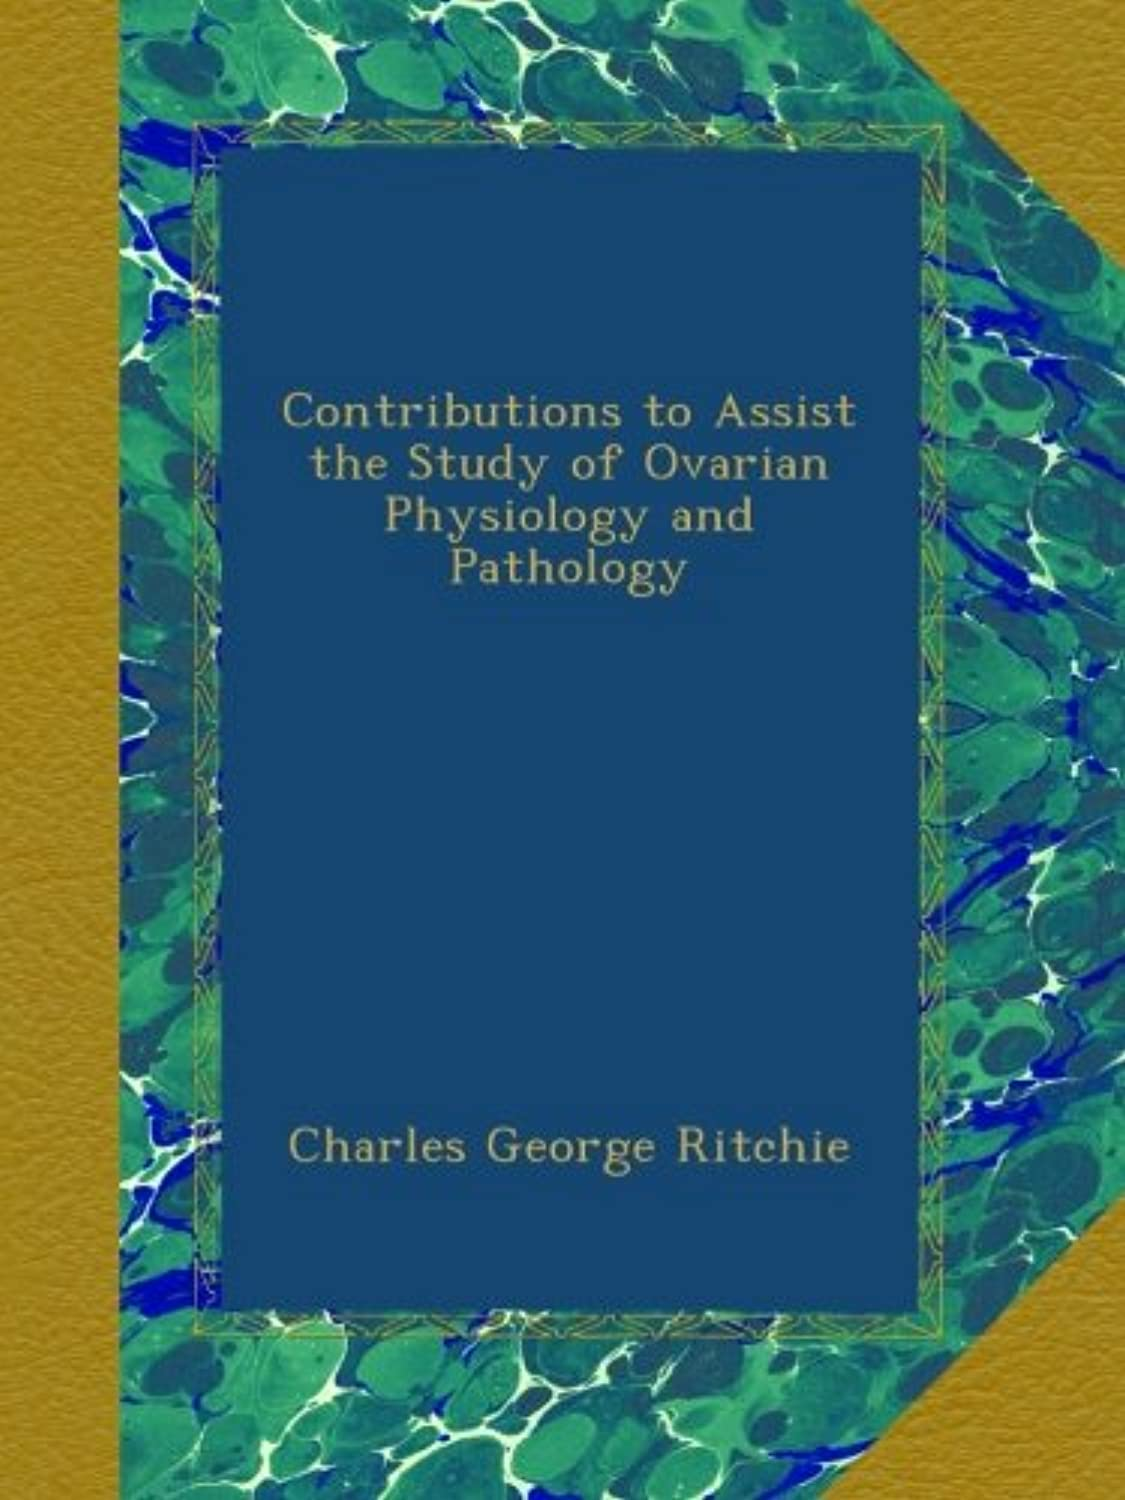 Contributions to Assist the Study of Ovarian Physiology and Pathology